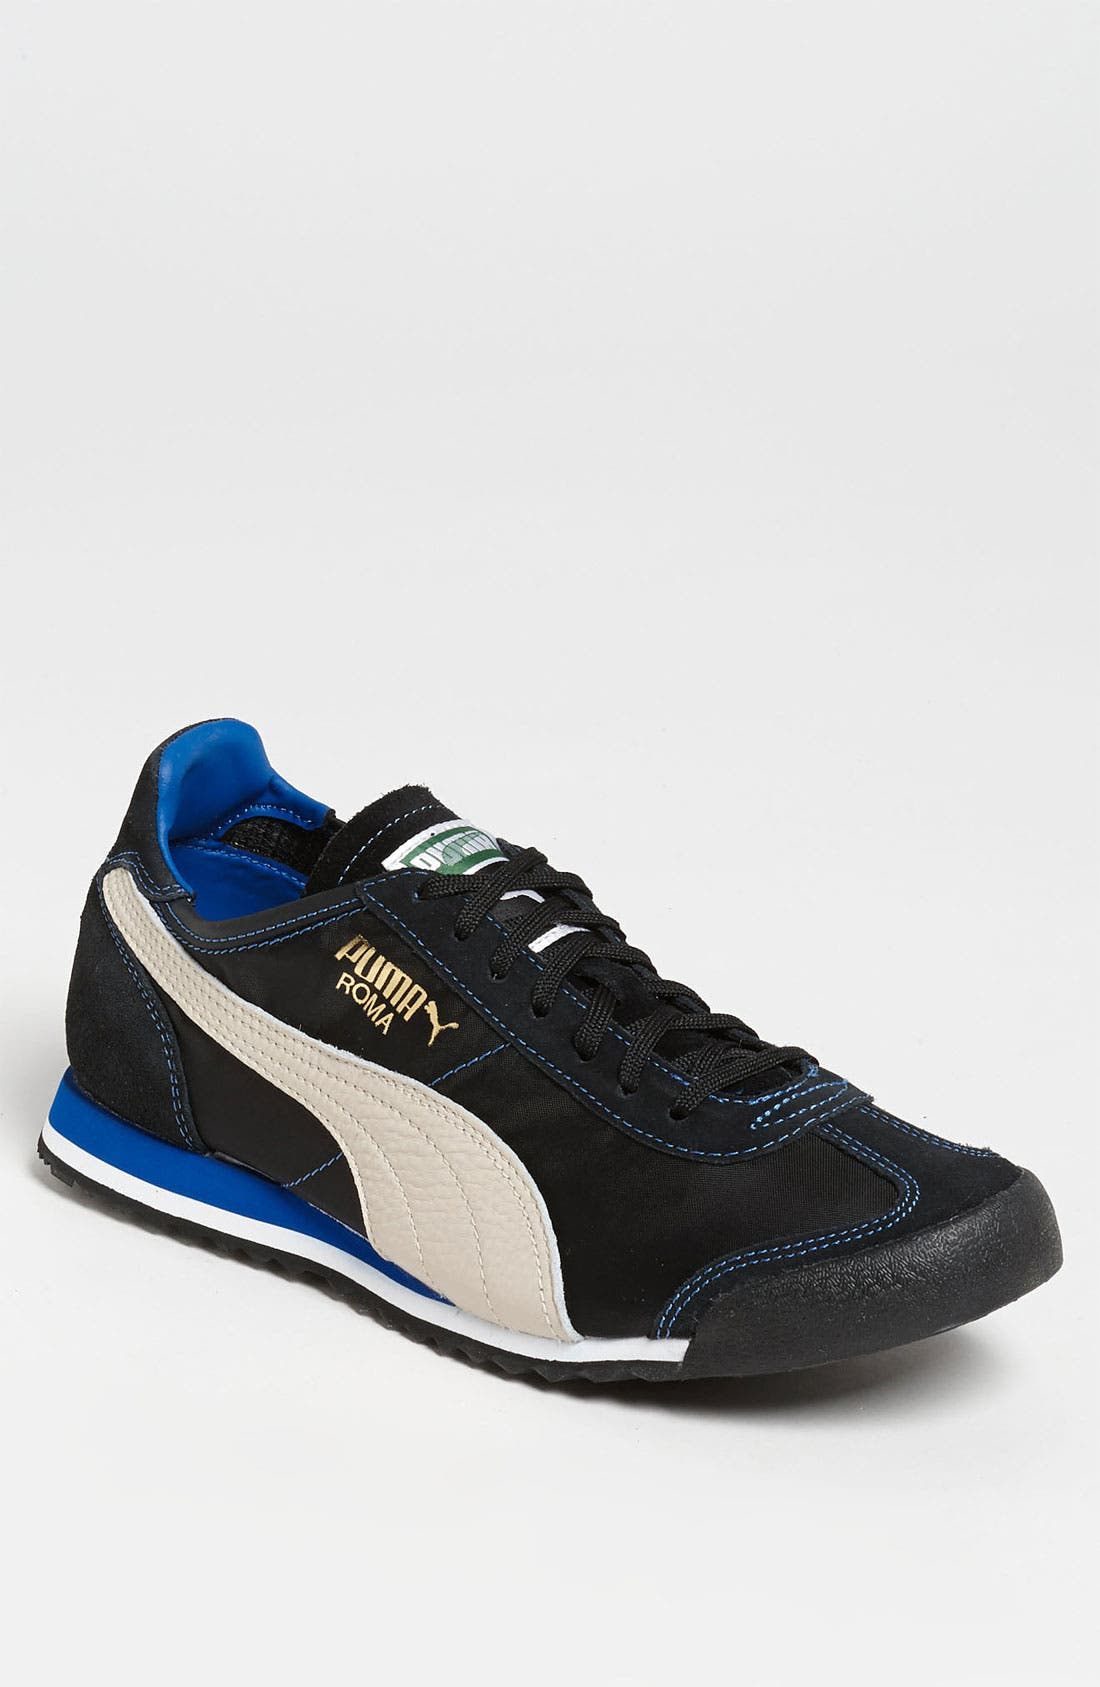 Main Image - PUMA 'Roma Slim' Sneaker (Men)